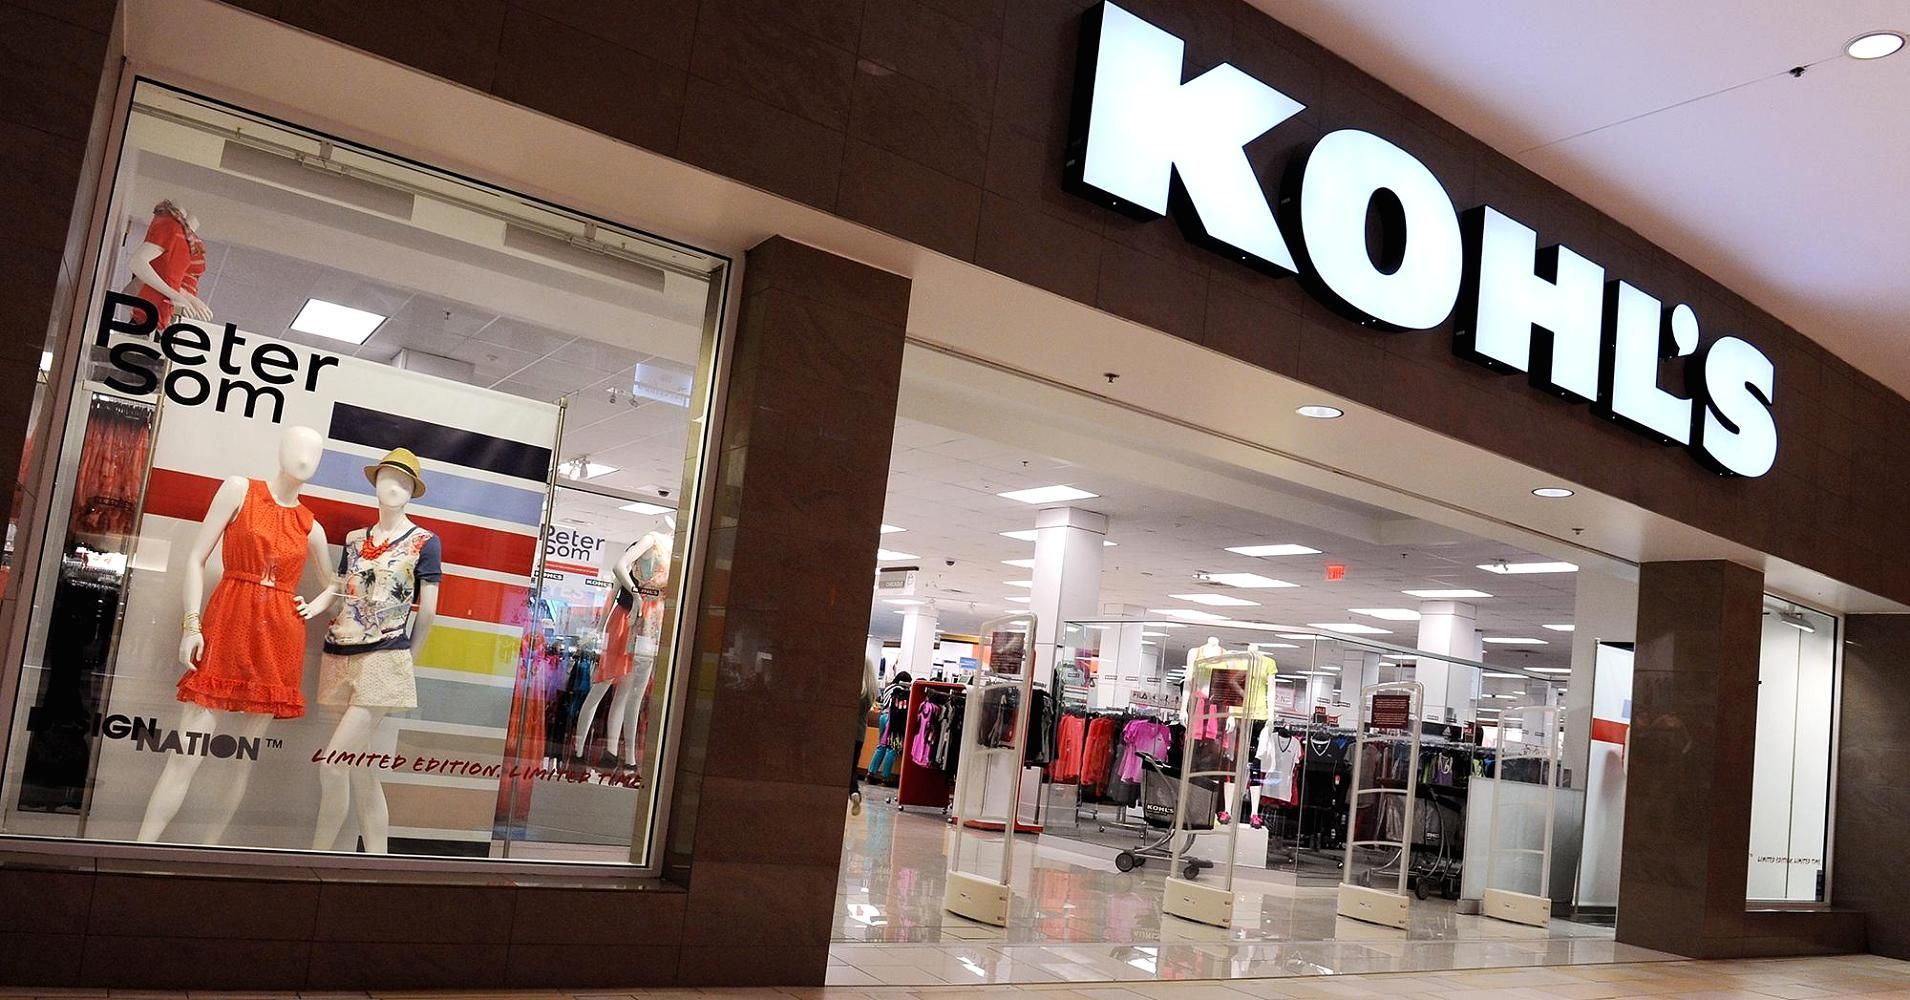 Here's the case for why Amazon should buy Kohl's Kohls